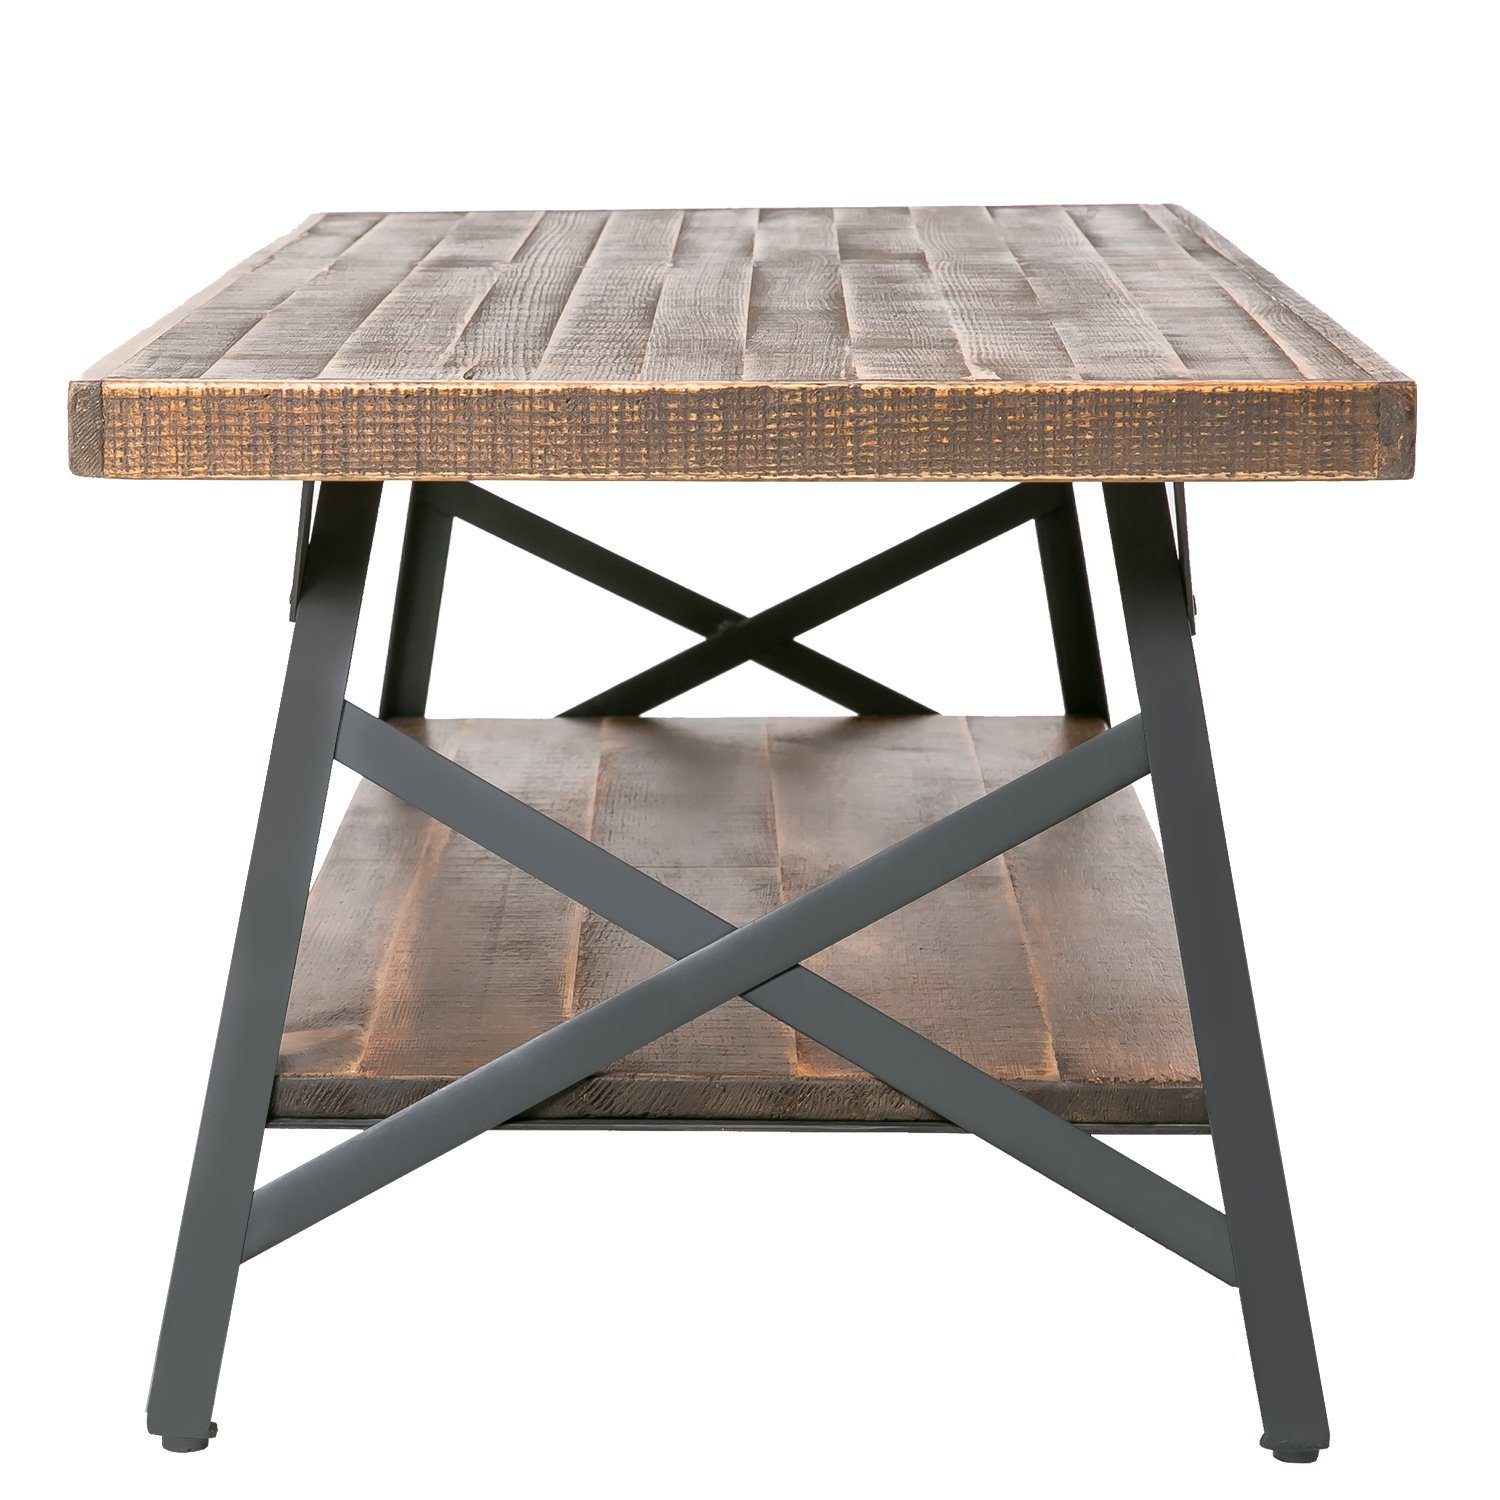 Coffee Tables And End Tables Sets Rustic End Tables: Rustic Wood Coffee Table With Metal Legs, End Table/Living